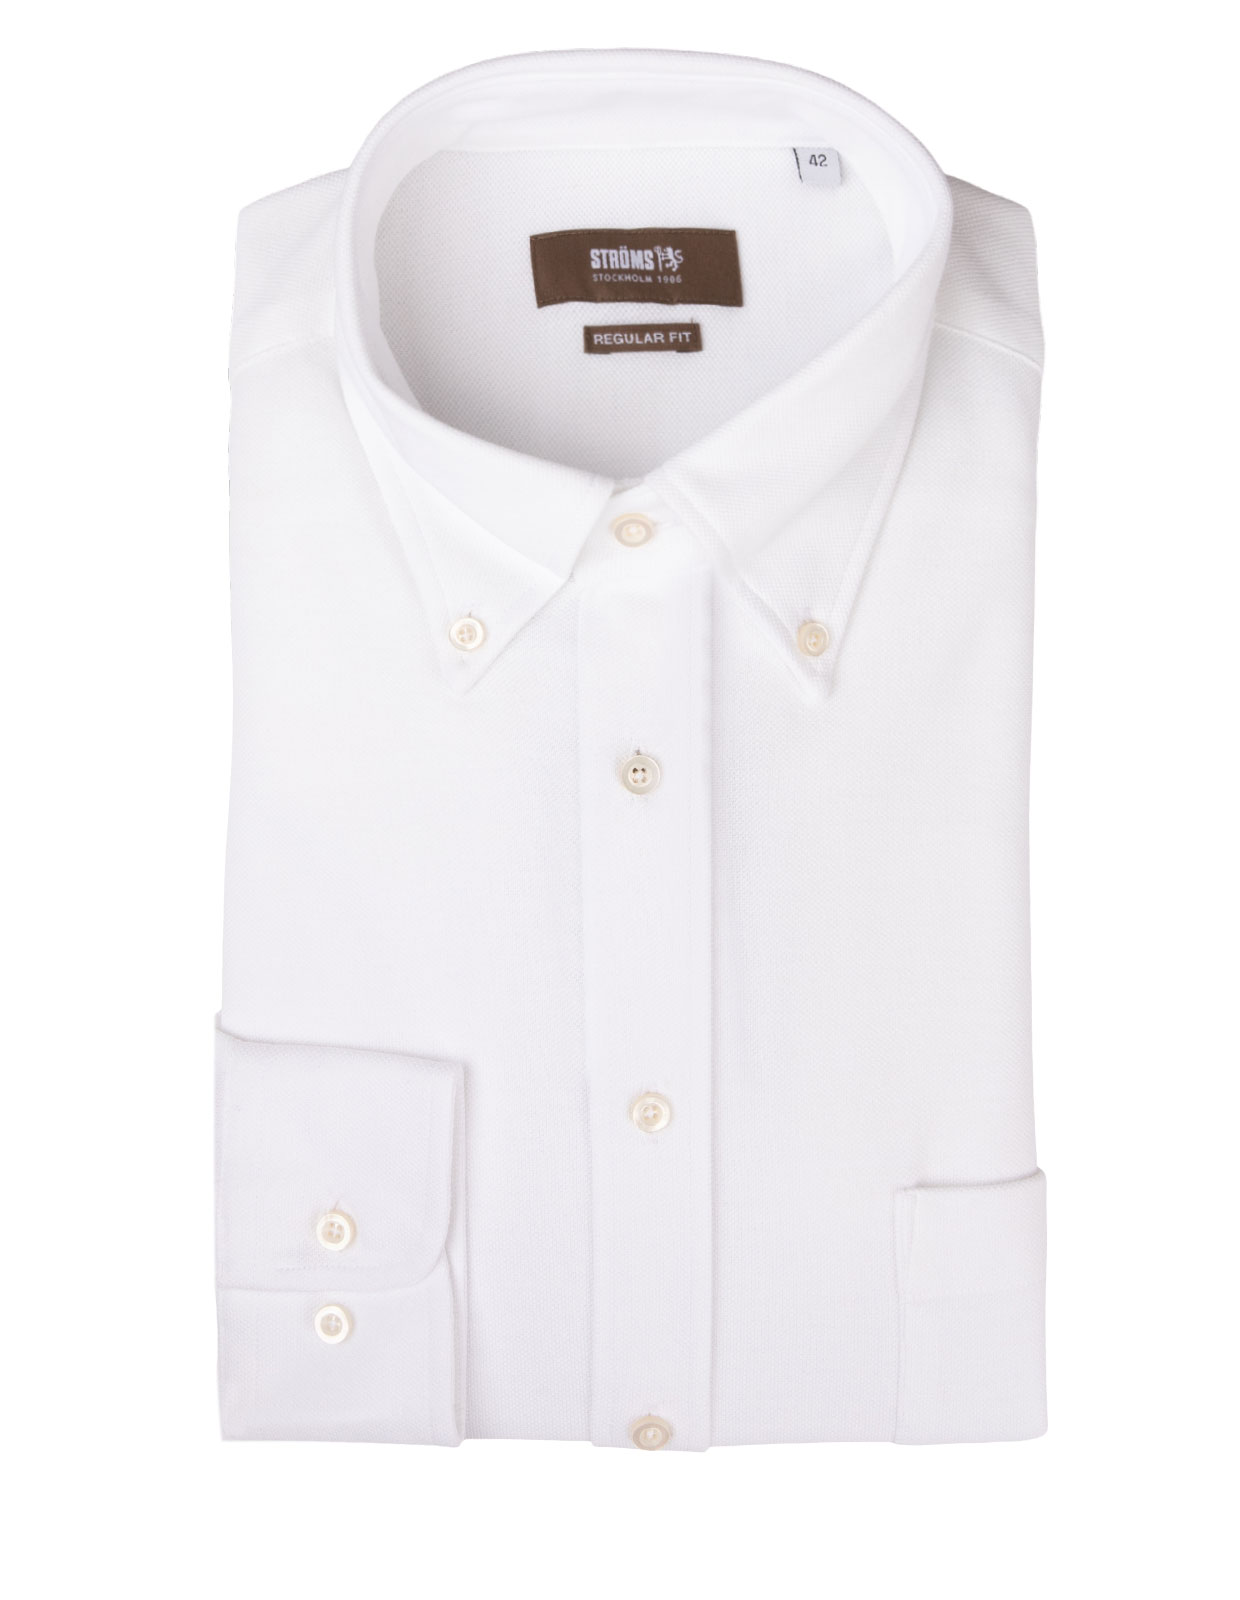 Regular Fit Button Down Jersey Shirt White